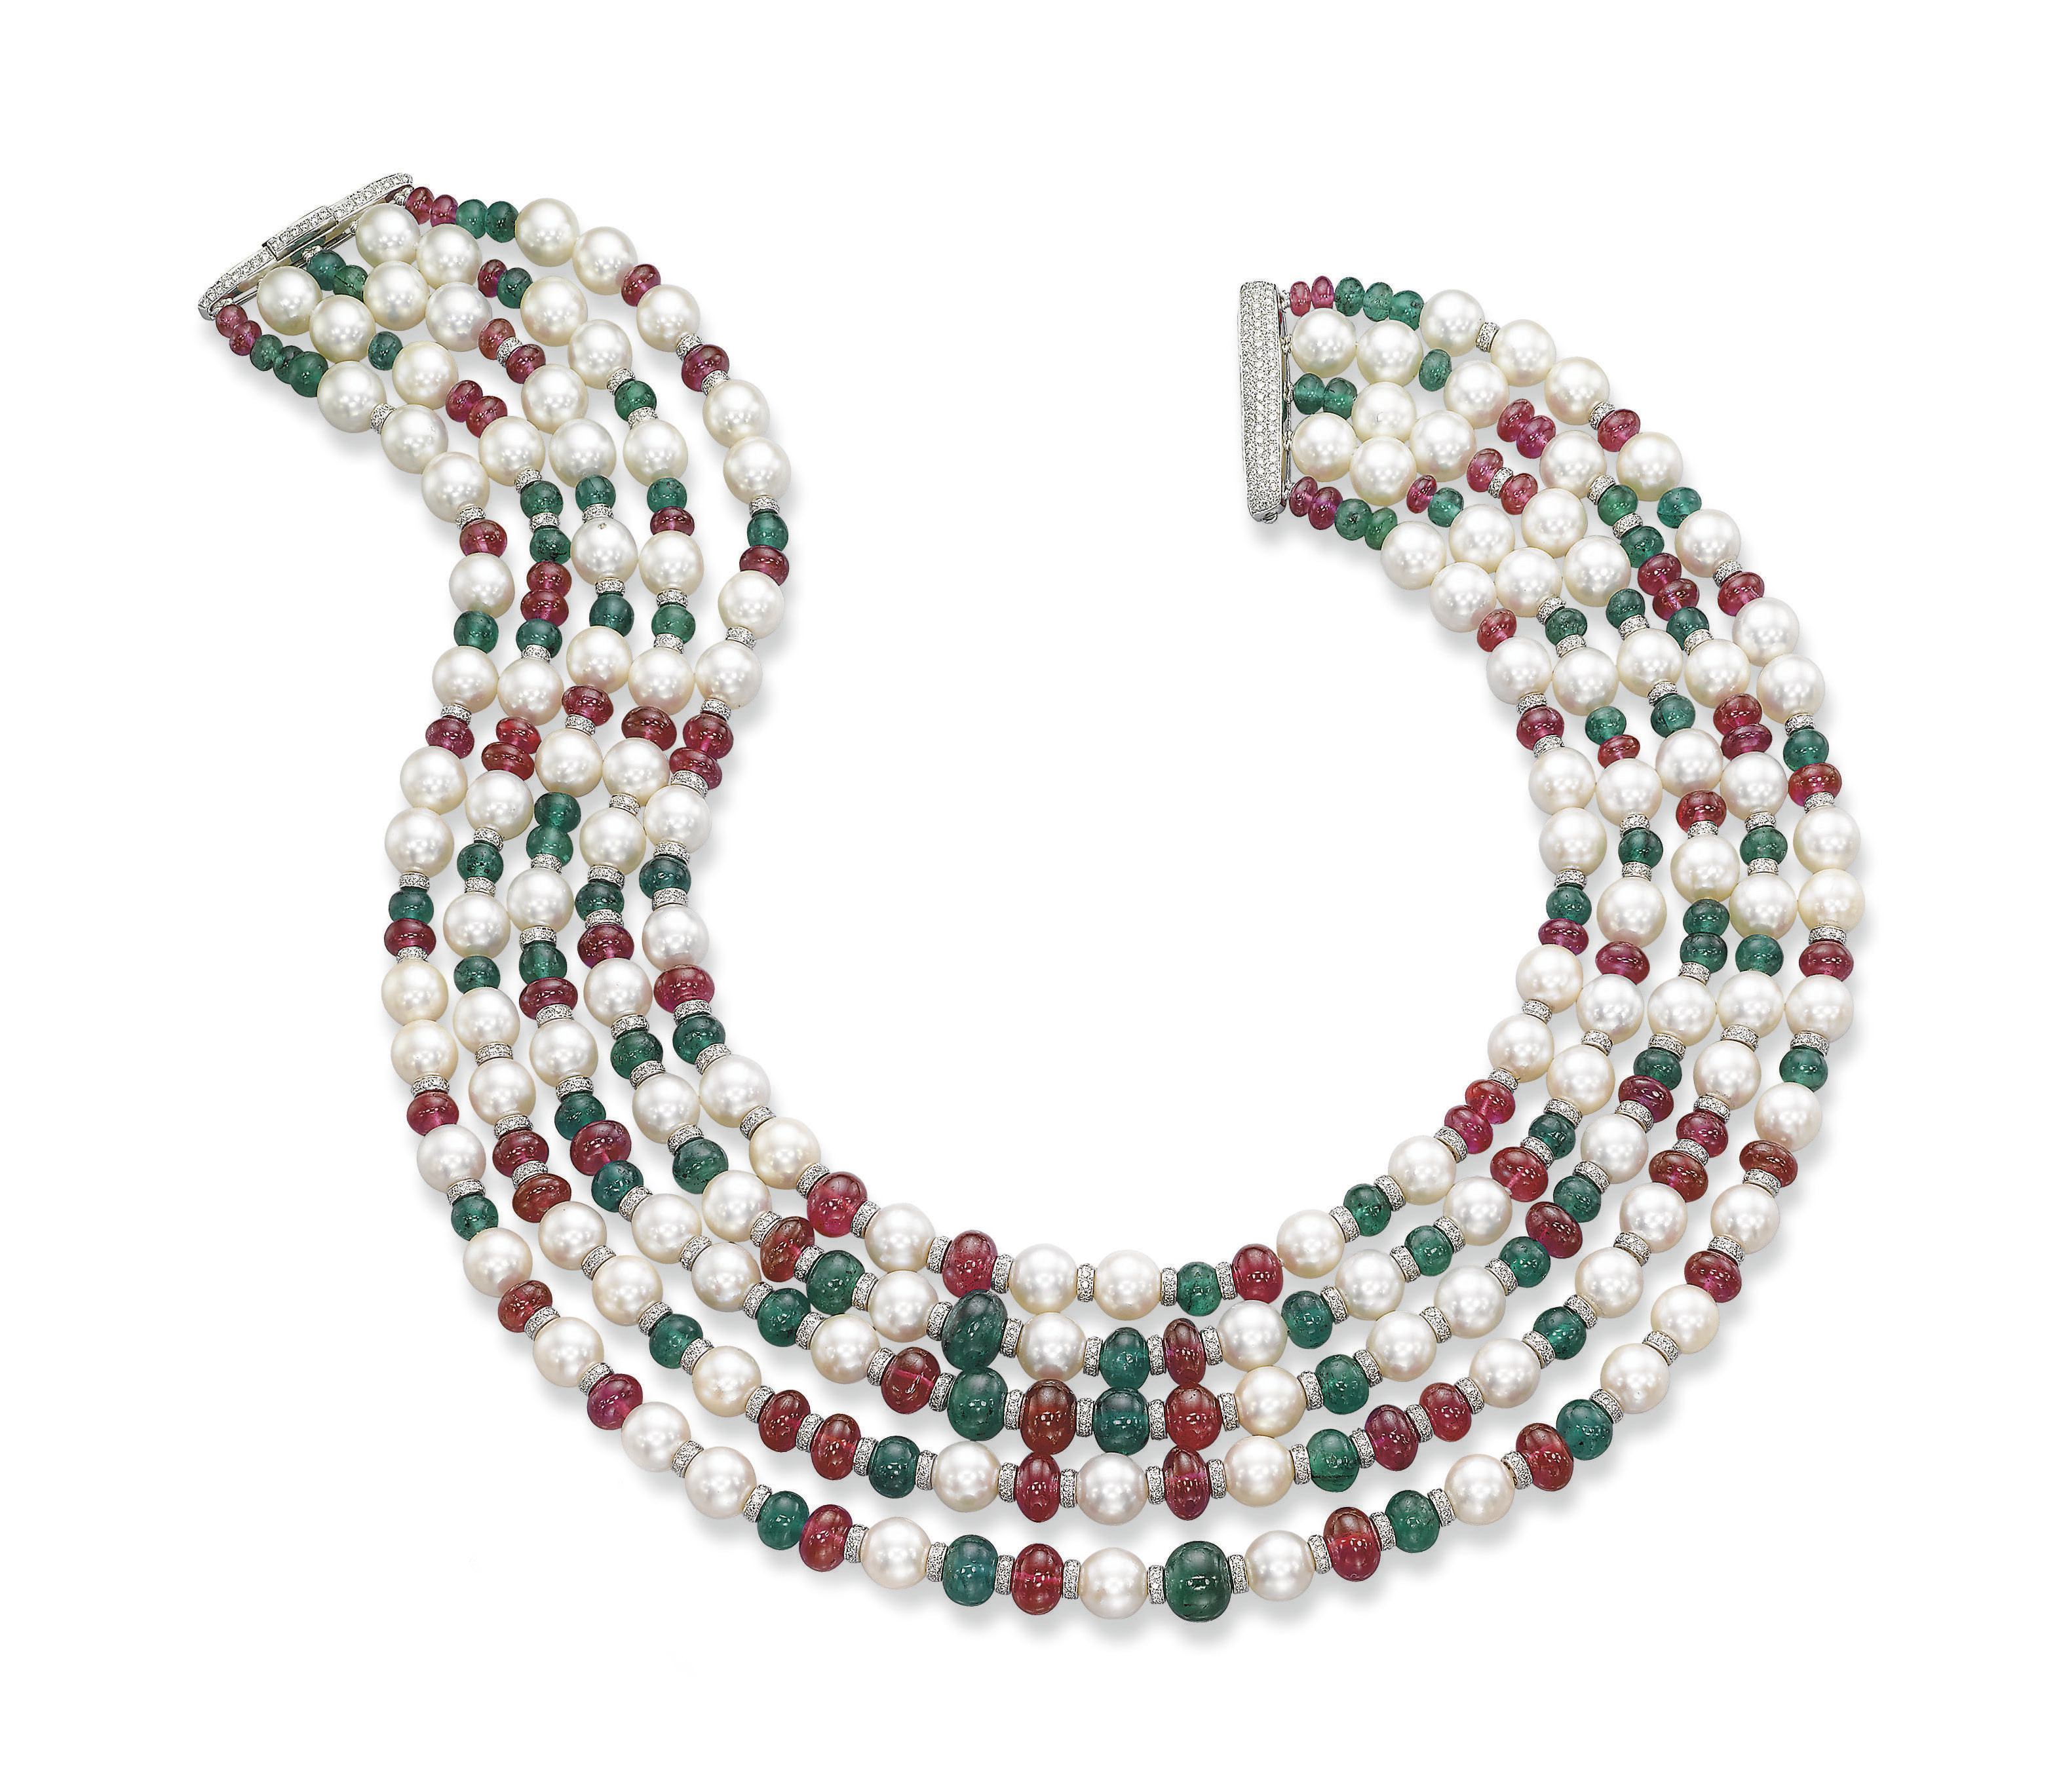 AN EMERALD, RUBY AND CULTURED PEARL NECKLACE, BY MICHELE DELLA VALLE